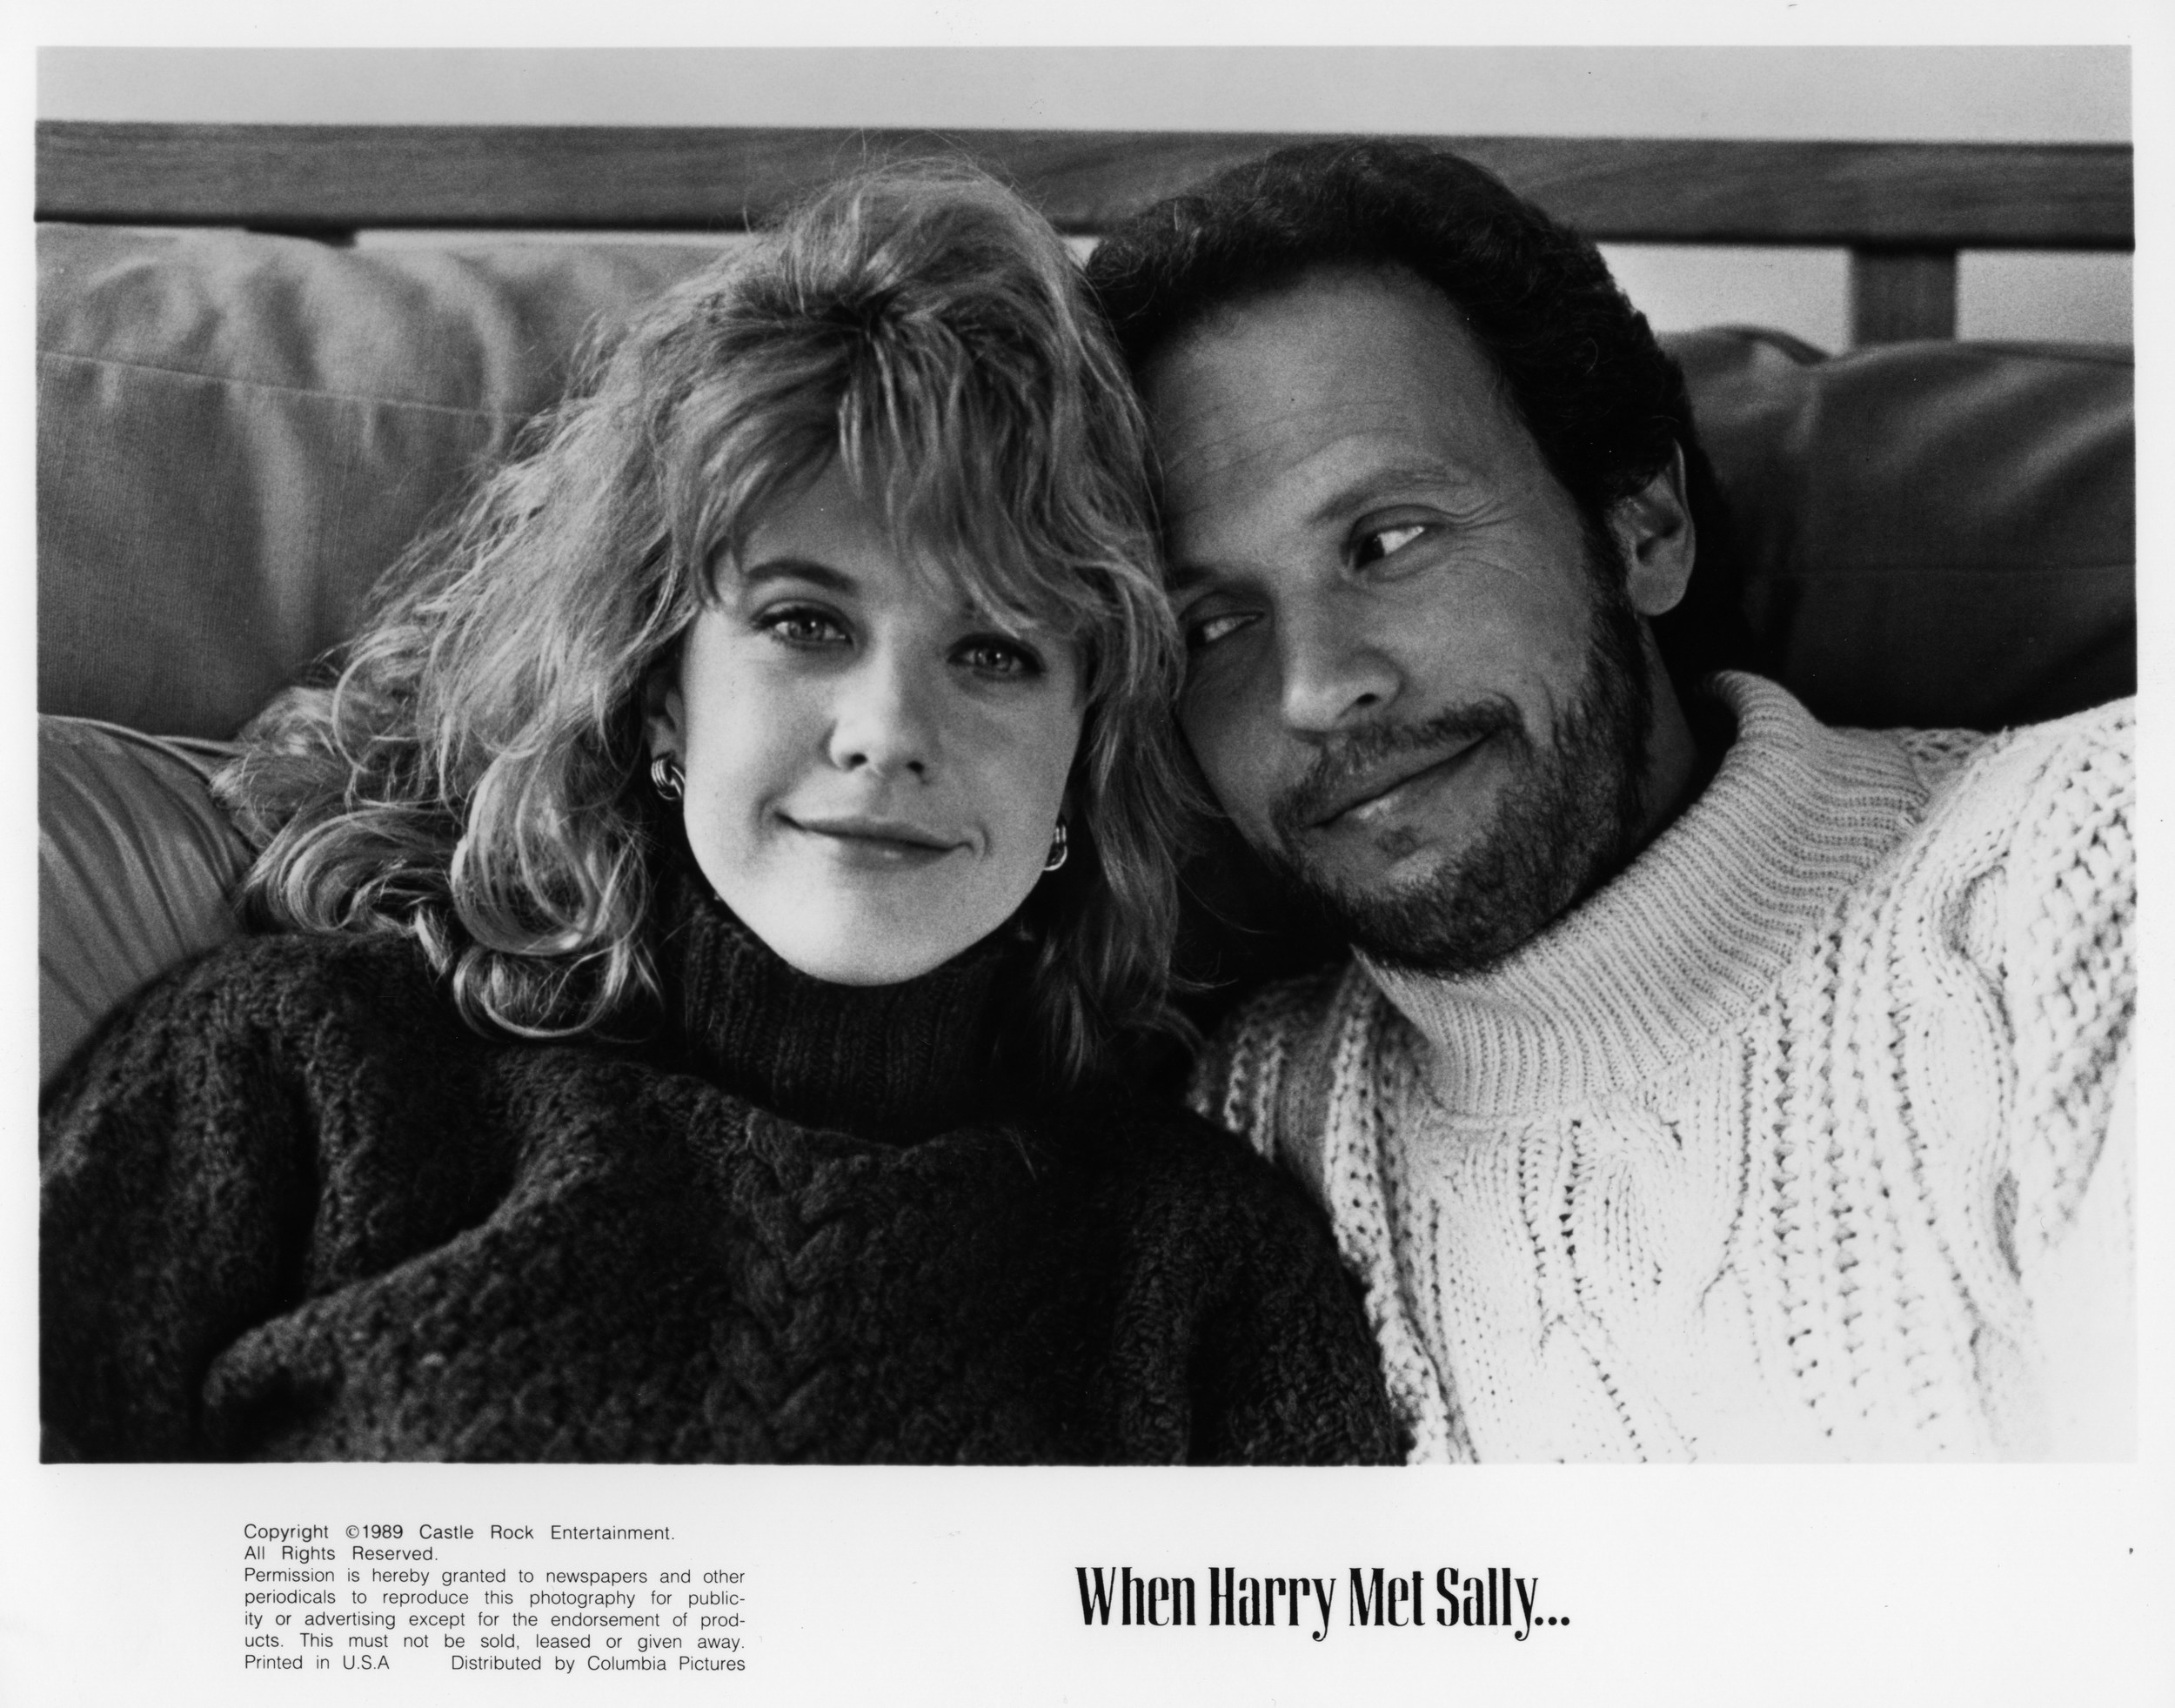 CIRCA 1989: Meg Ryan and Billy Crystal pose for the movie 'When Harry Met Sally' circa 1989. (Photo by Hulton Archive/Getty Images)